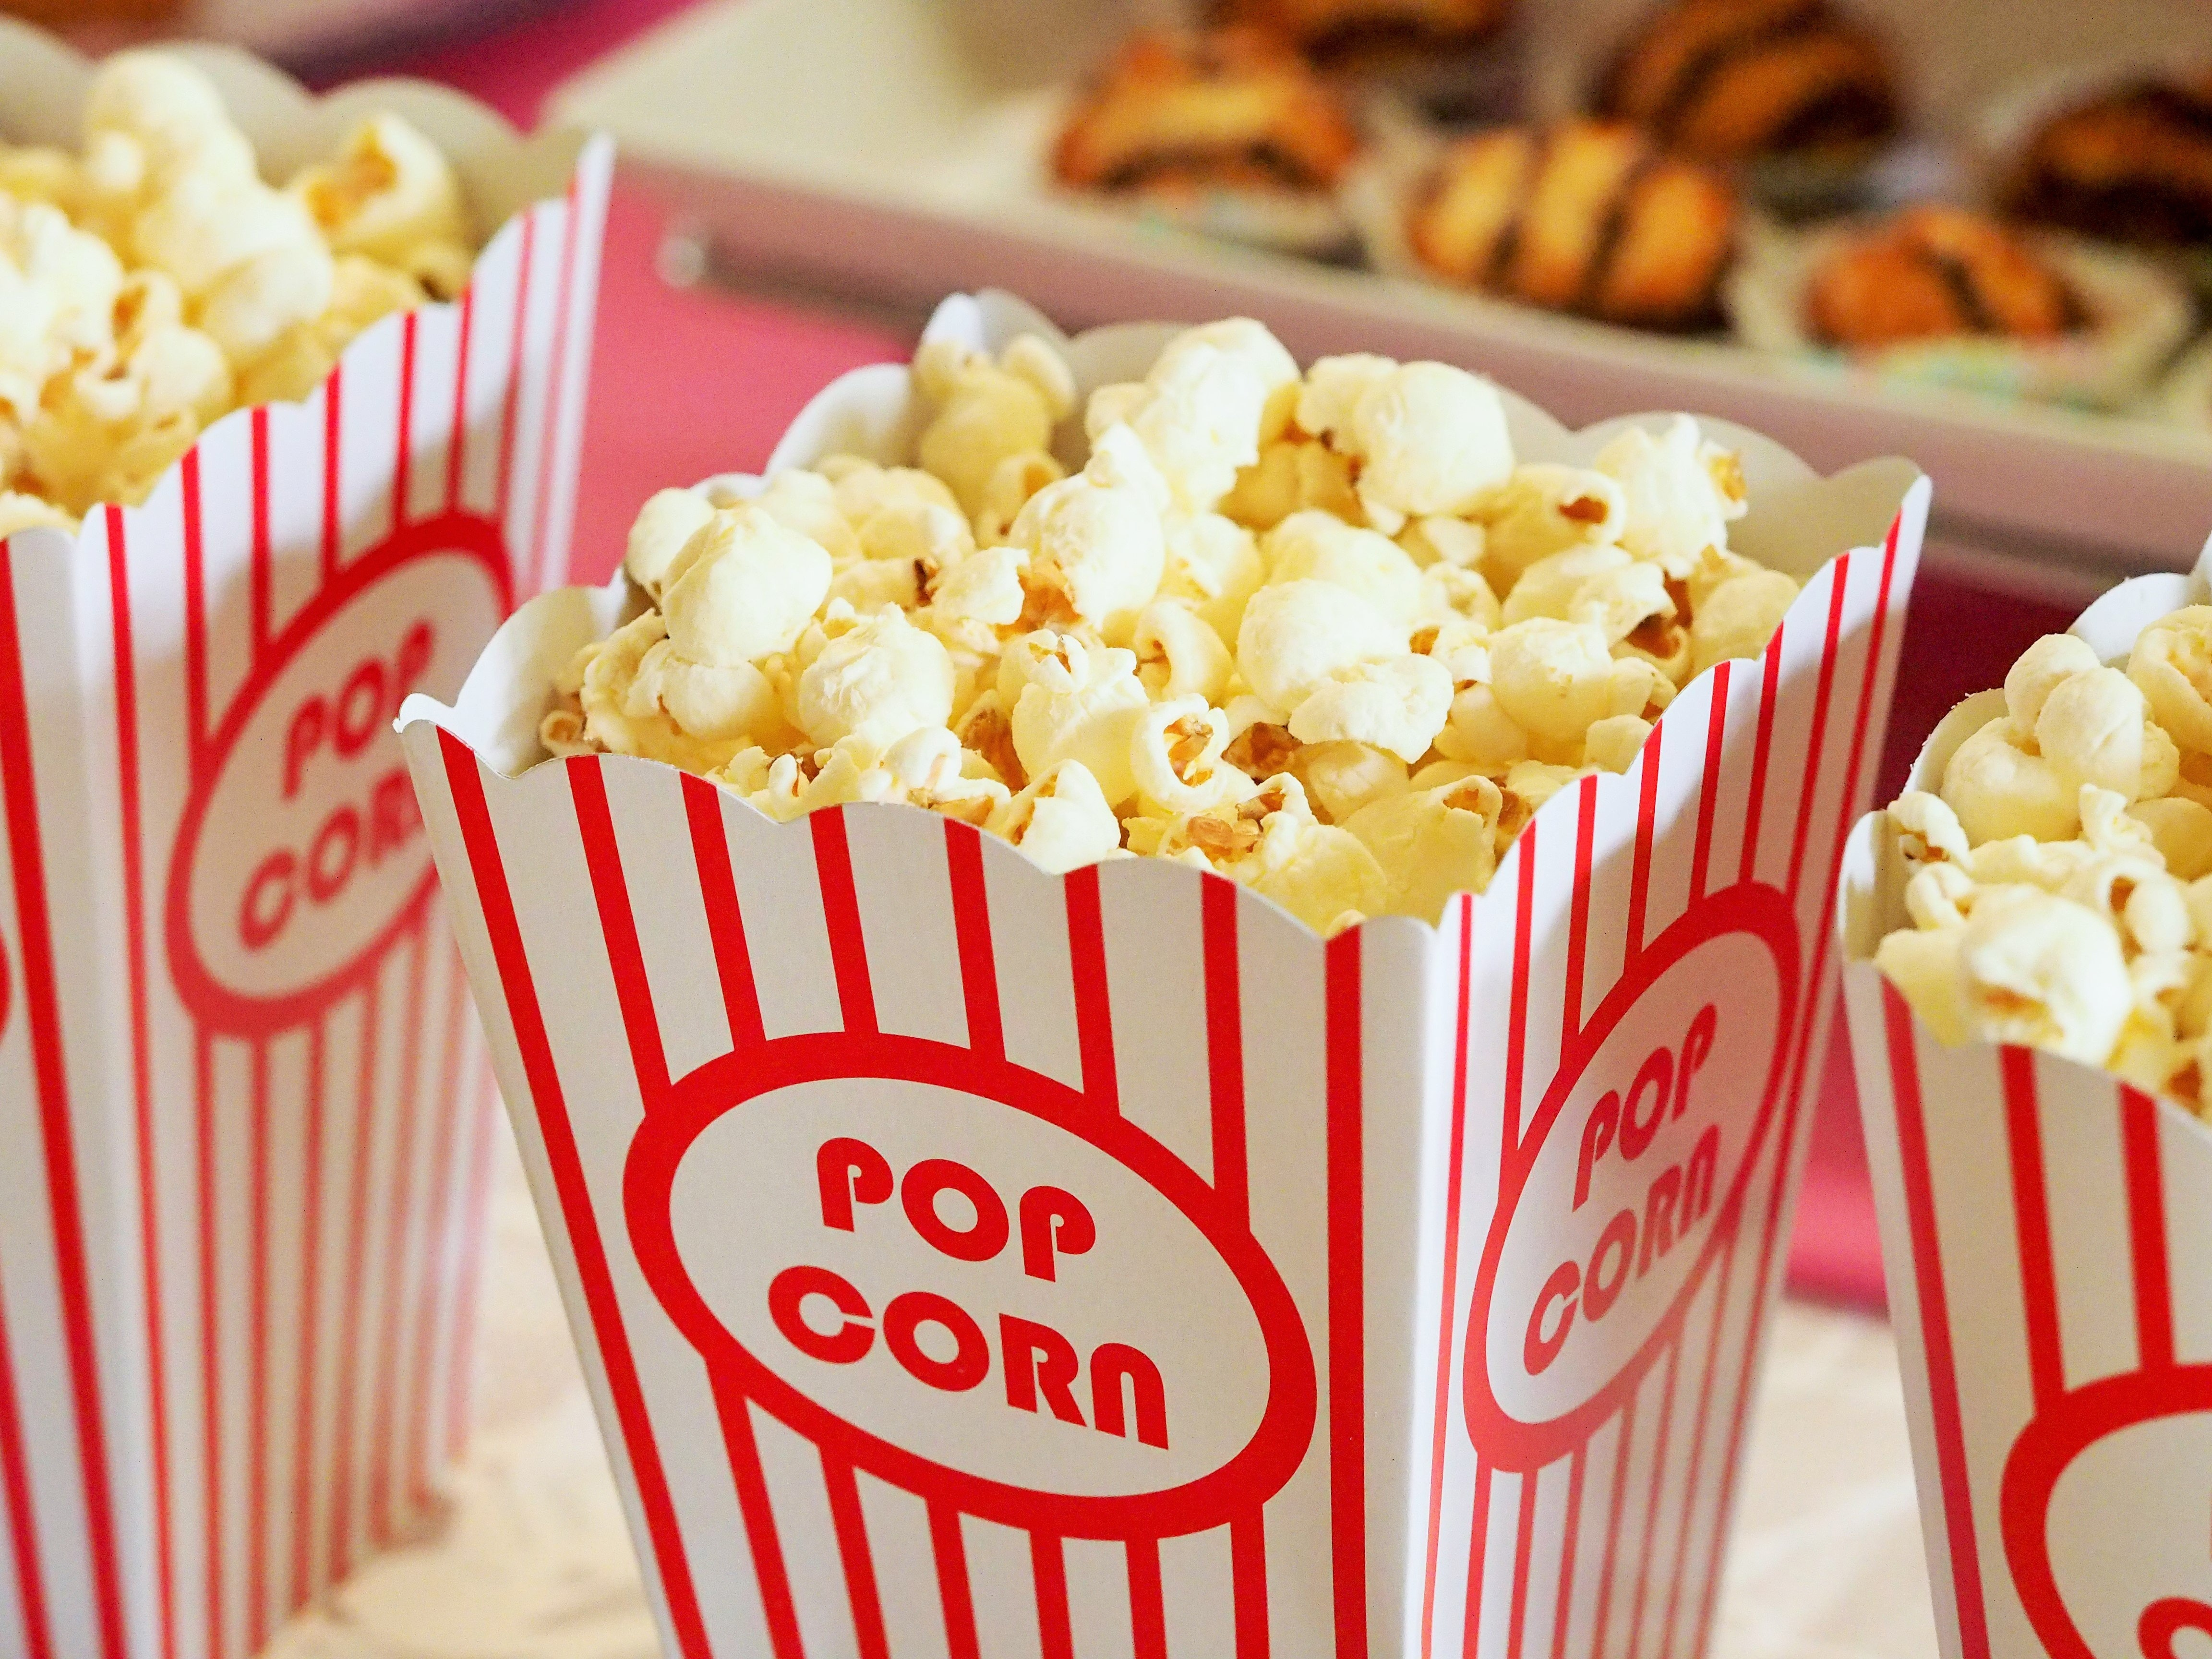 Film business and popcorn 11